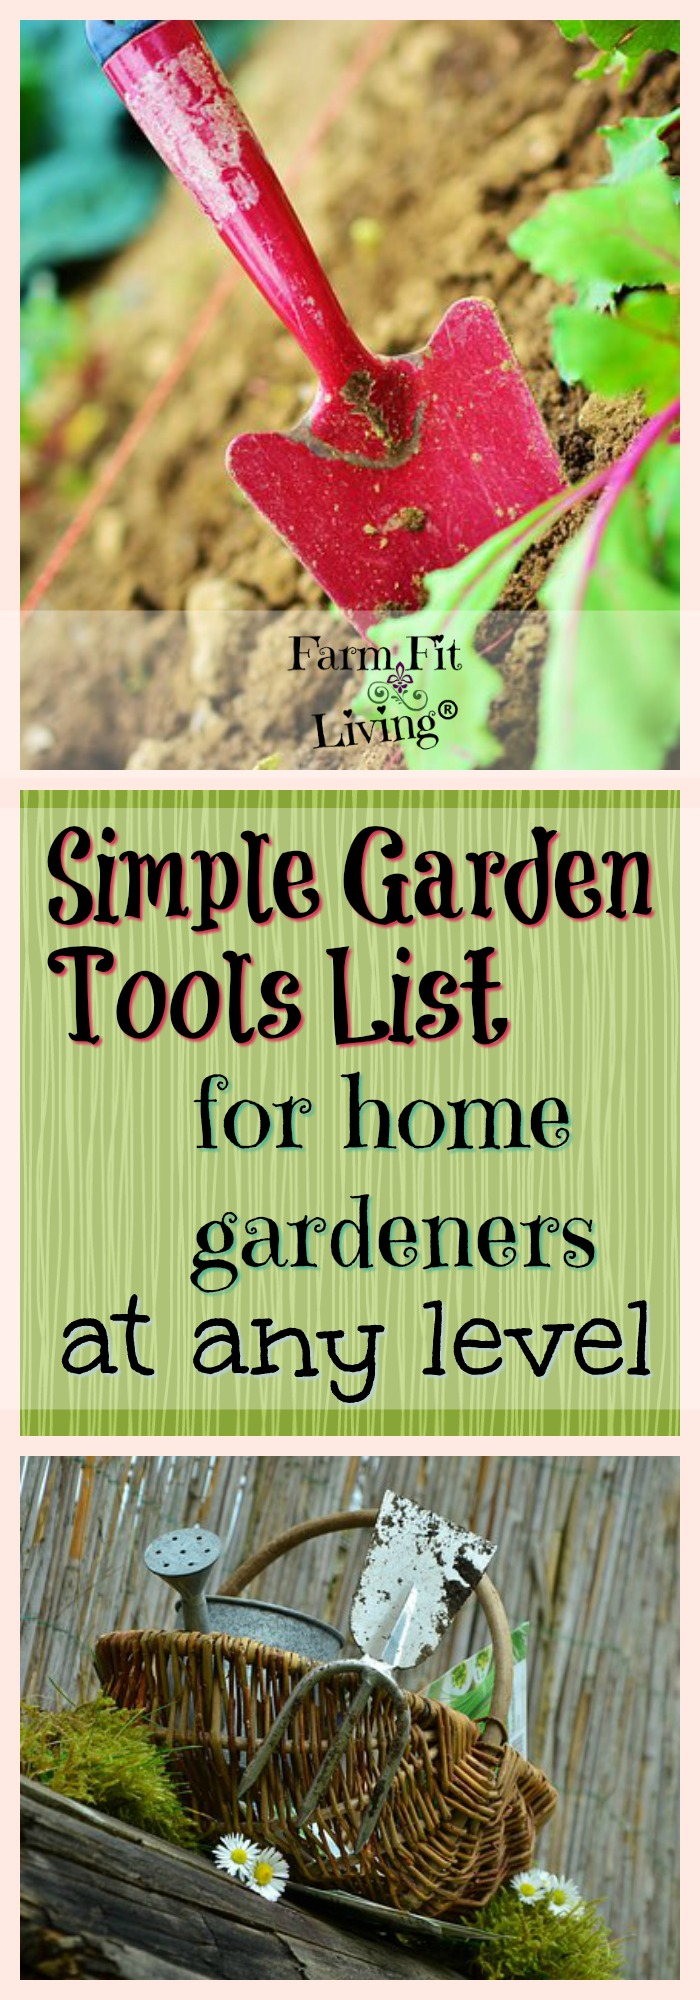 Are you looking for a simple garden tools list to help you grow your garden? I've included supplies needed for home gardeners at every level. Click to read more. #gardentools